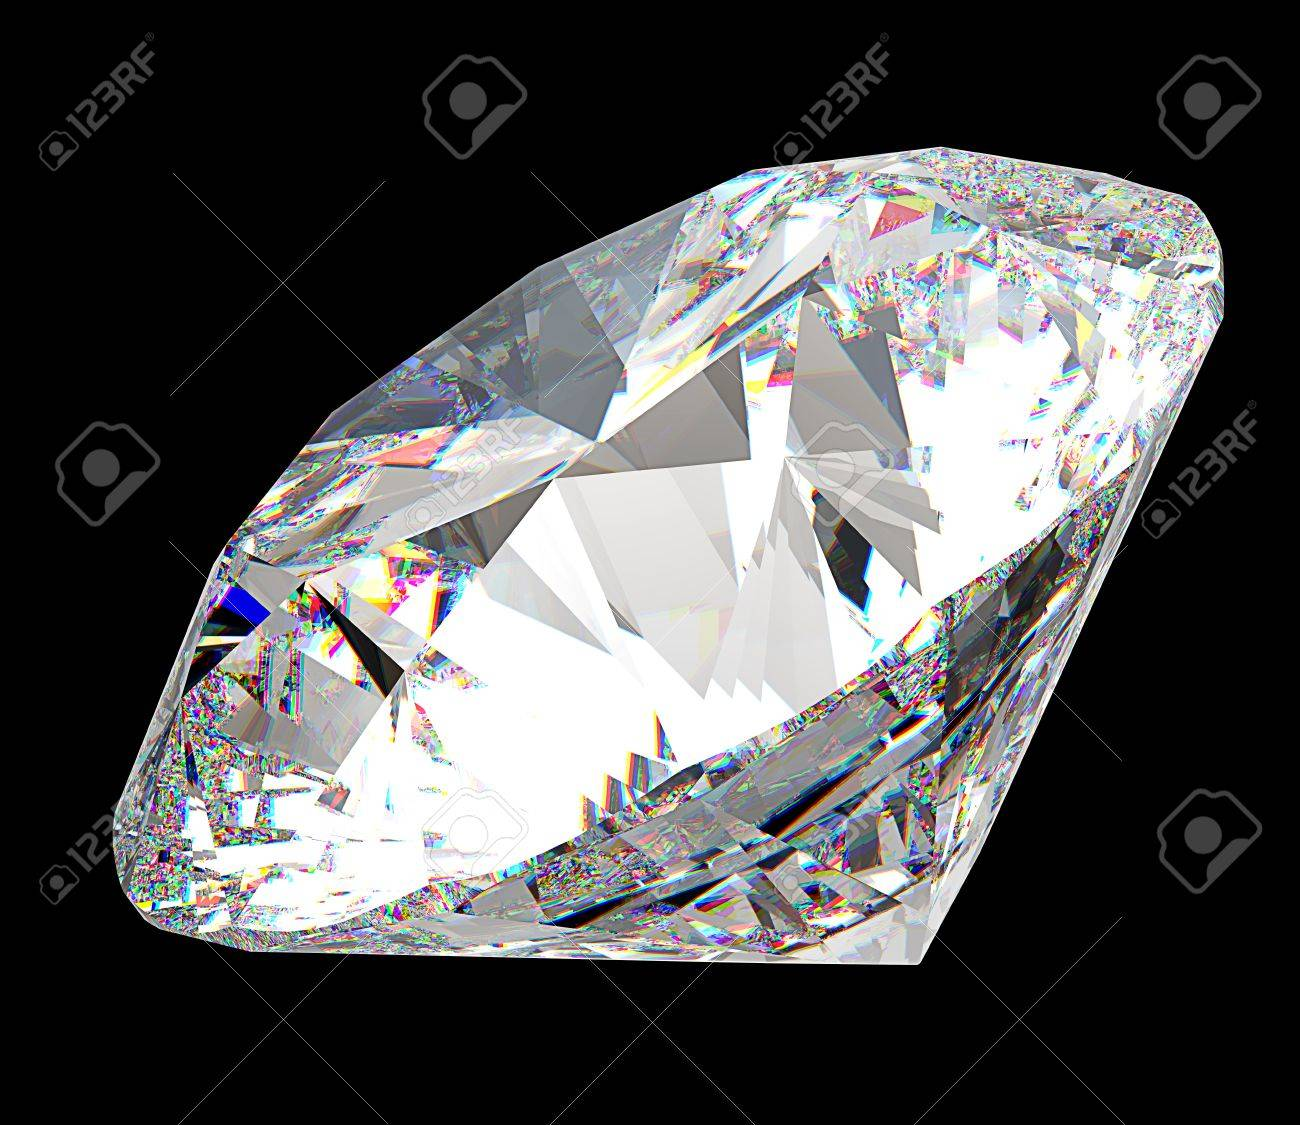 image ring photo stock large precious light cluster gems gray background diamond of